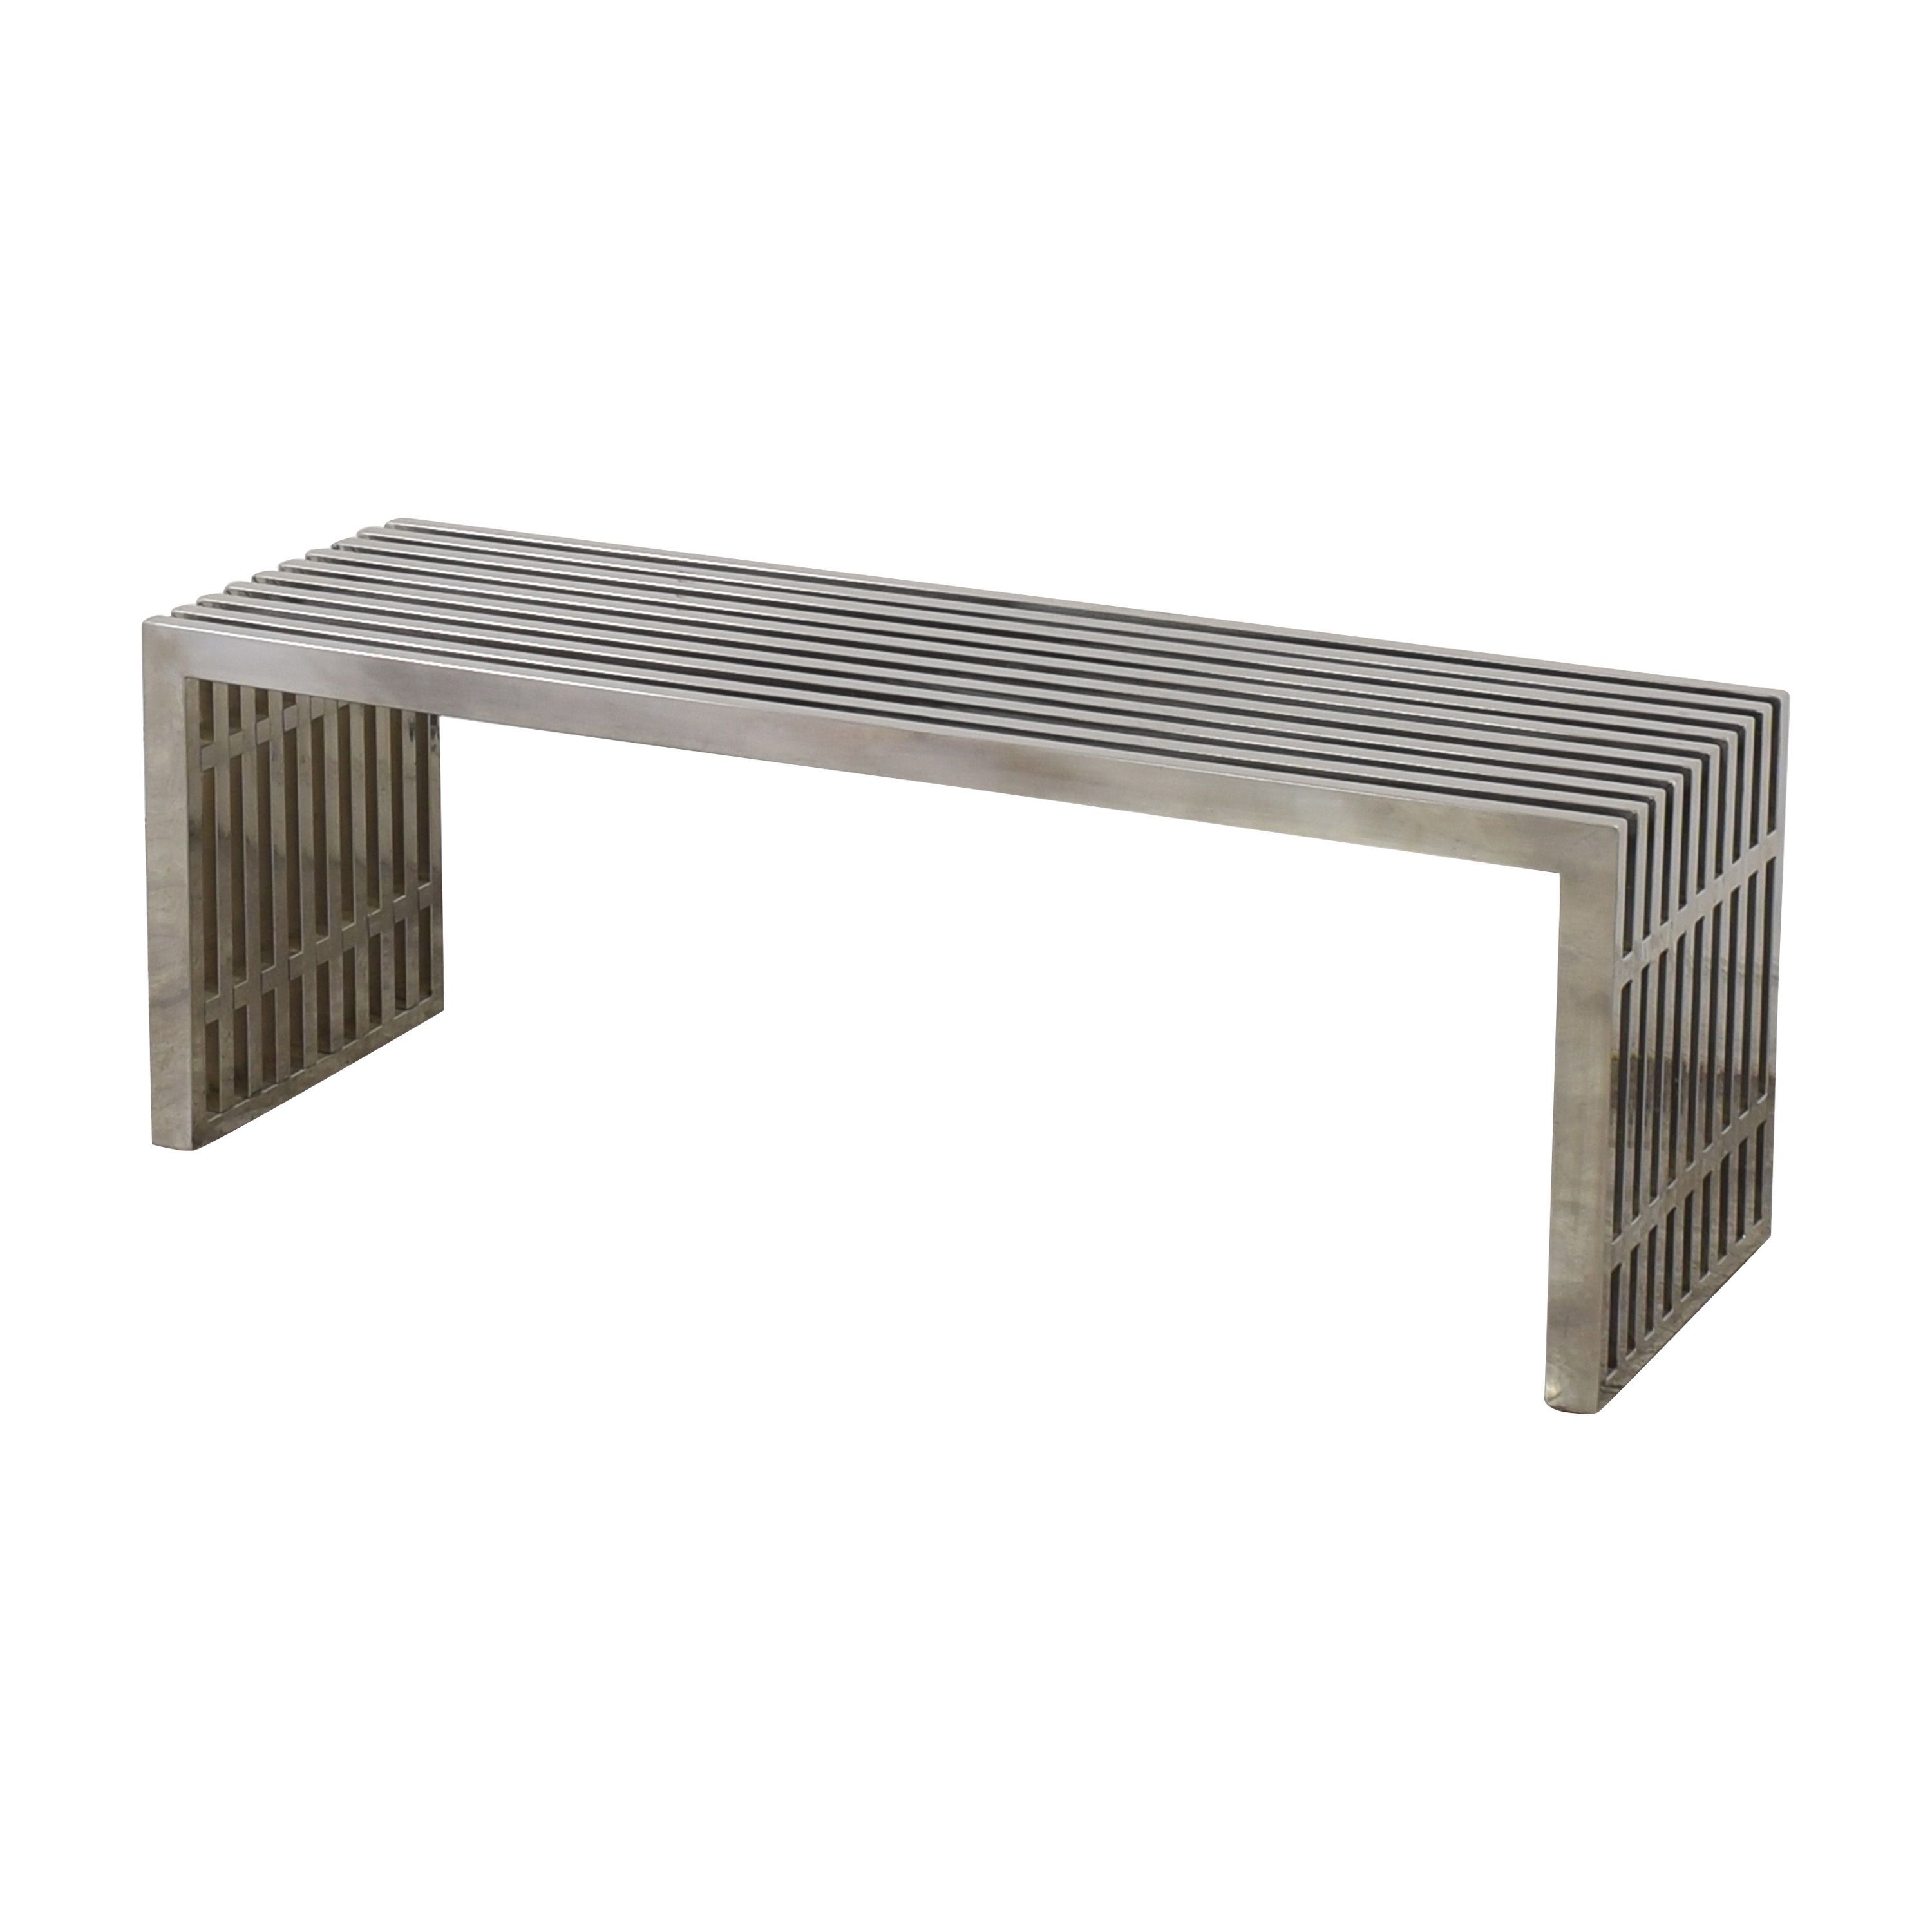 Lexmod Gridiron Medium Stainless Steel Bench / Benches